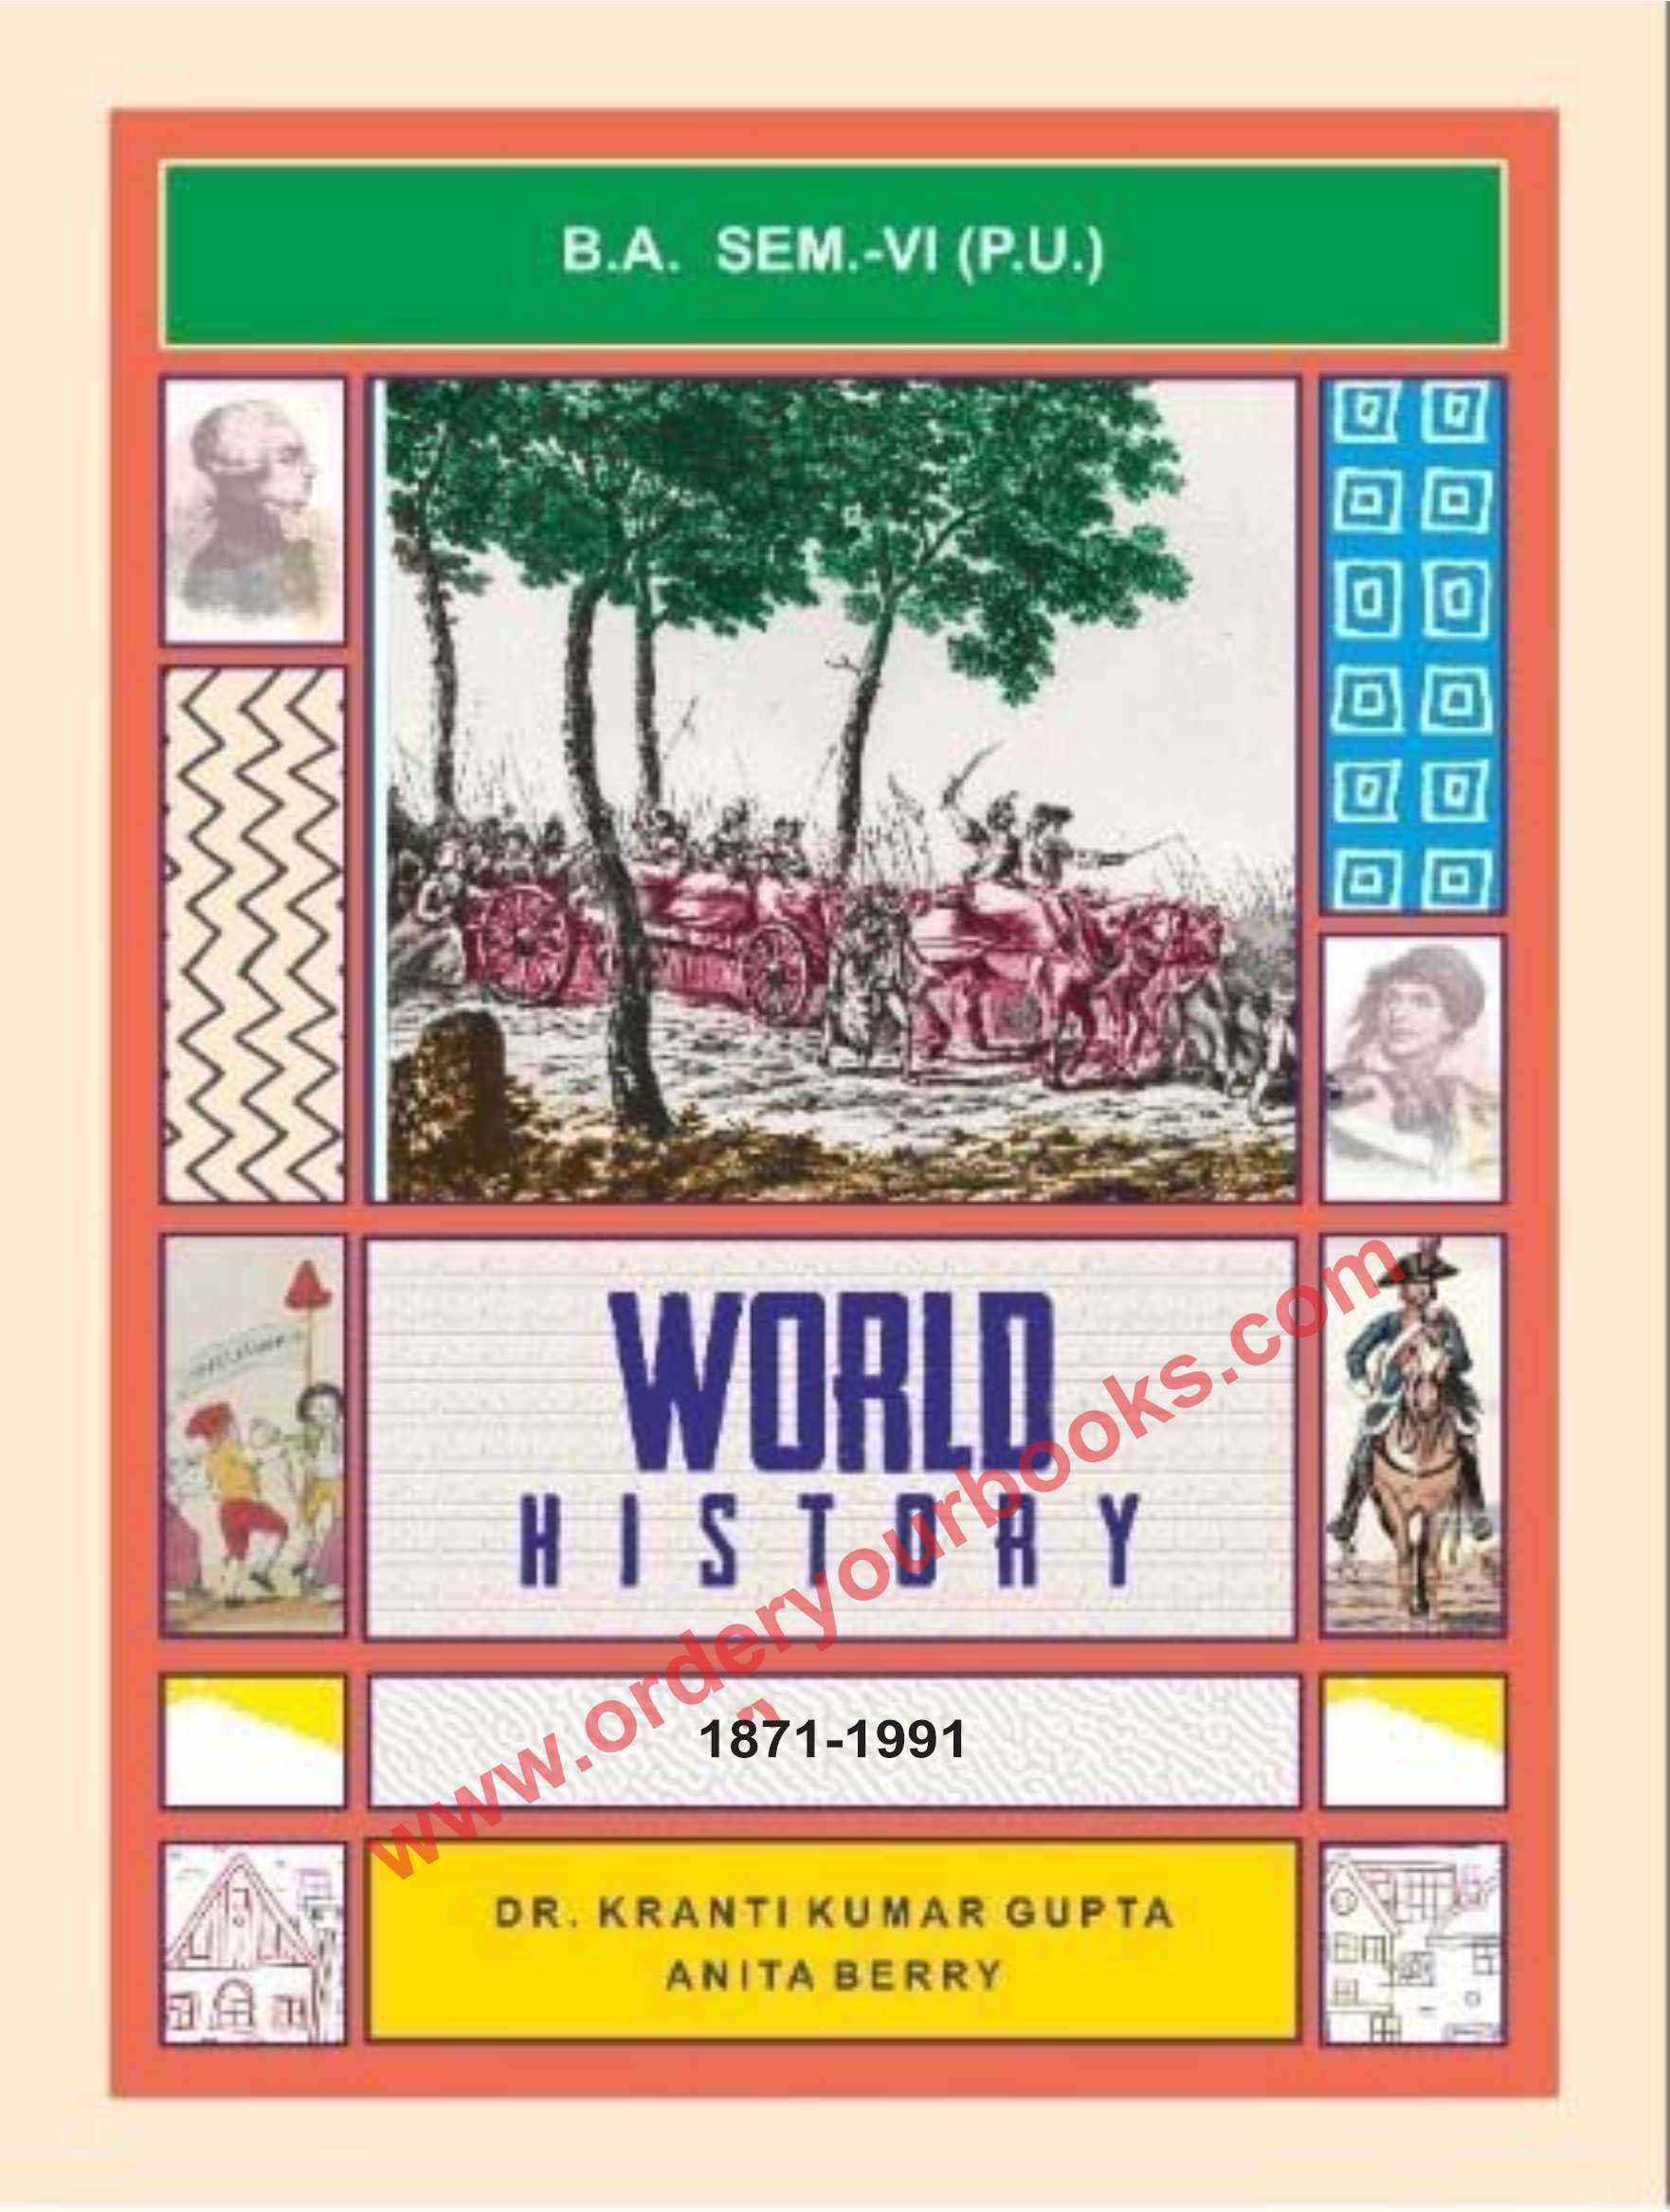 World history 1871-1991 for Semester-VI B.A. (P.U.) by Dr. K.K. Gupta and Anita Berry (Mohindra Publishng house) Edition 2021 for Panjab University